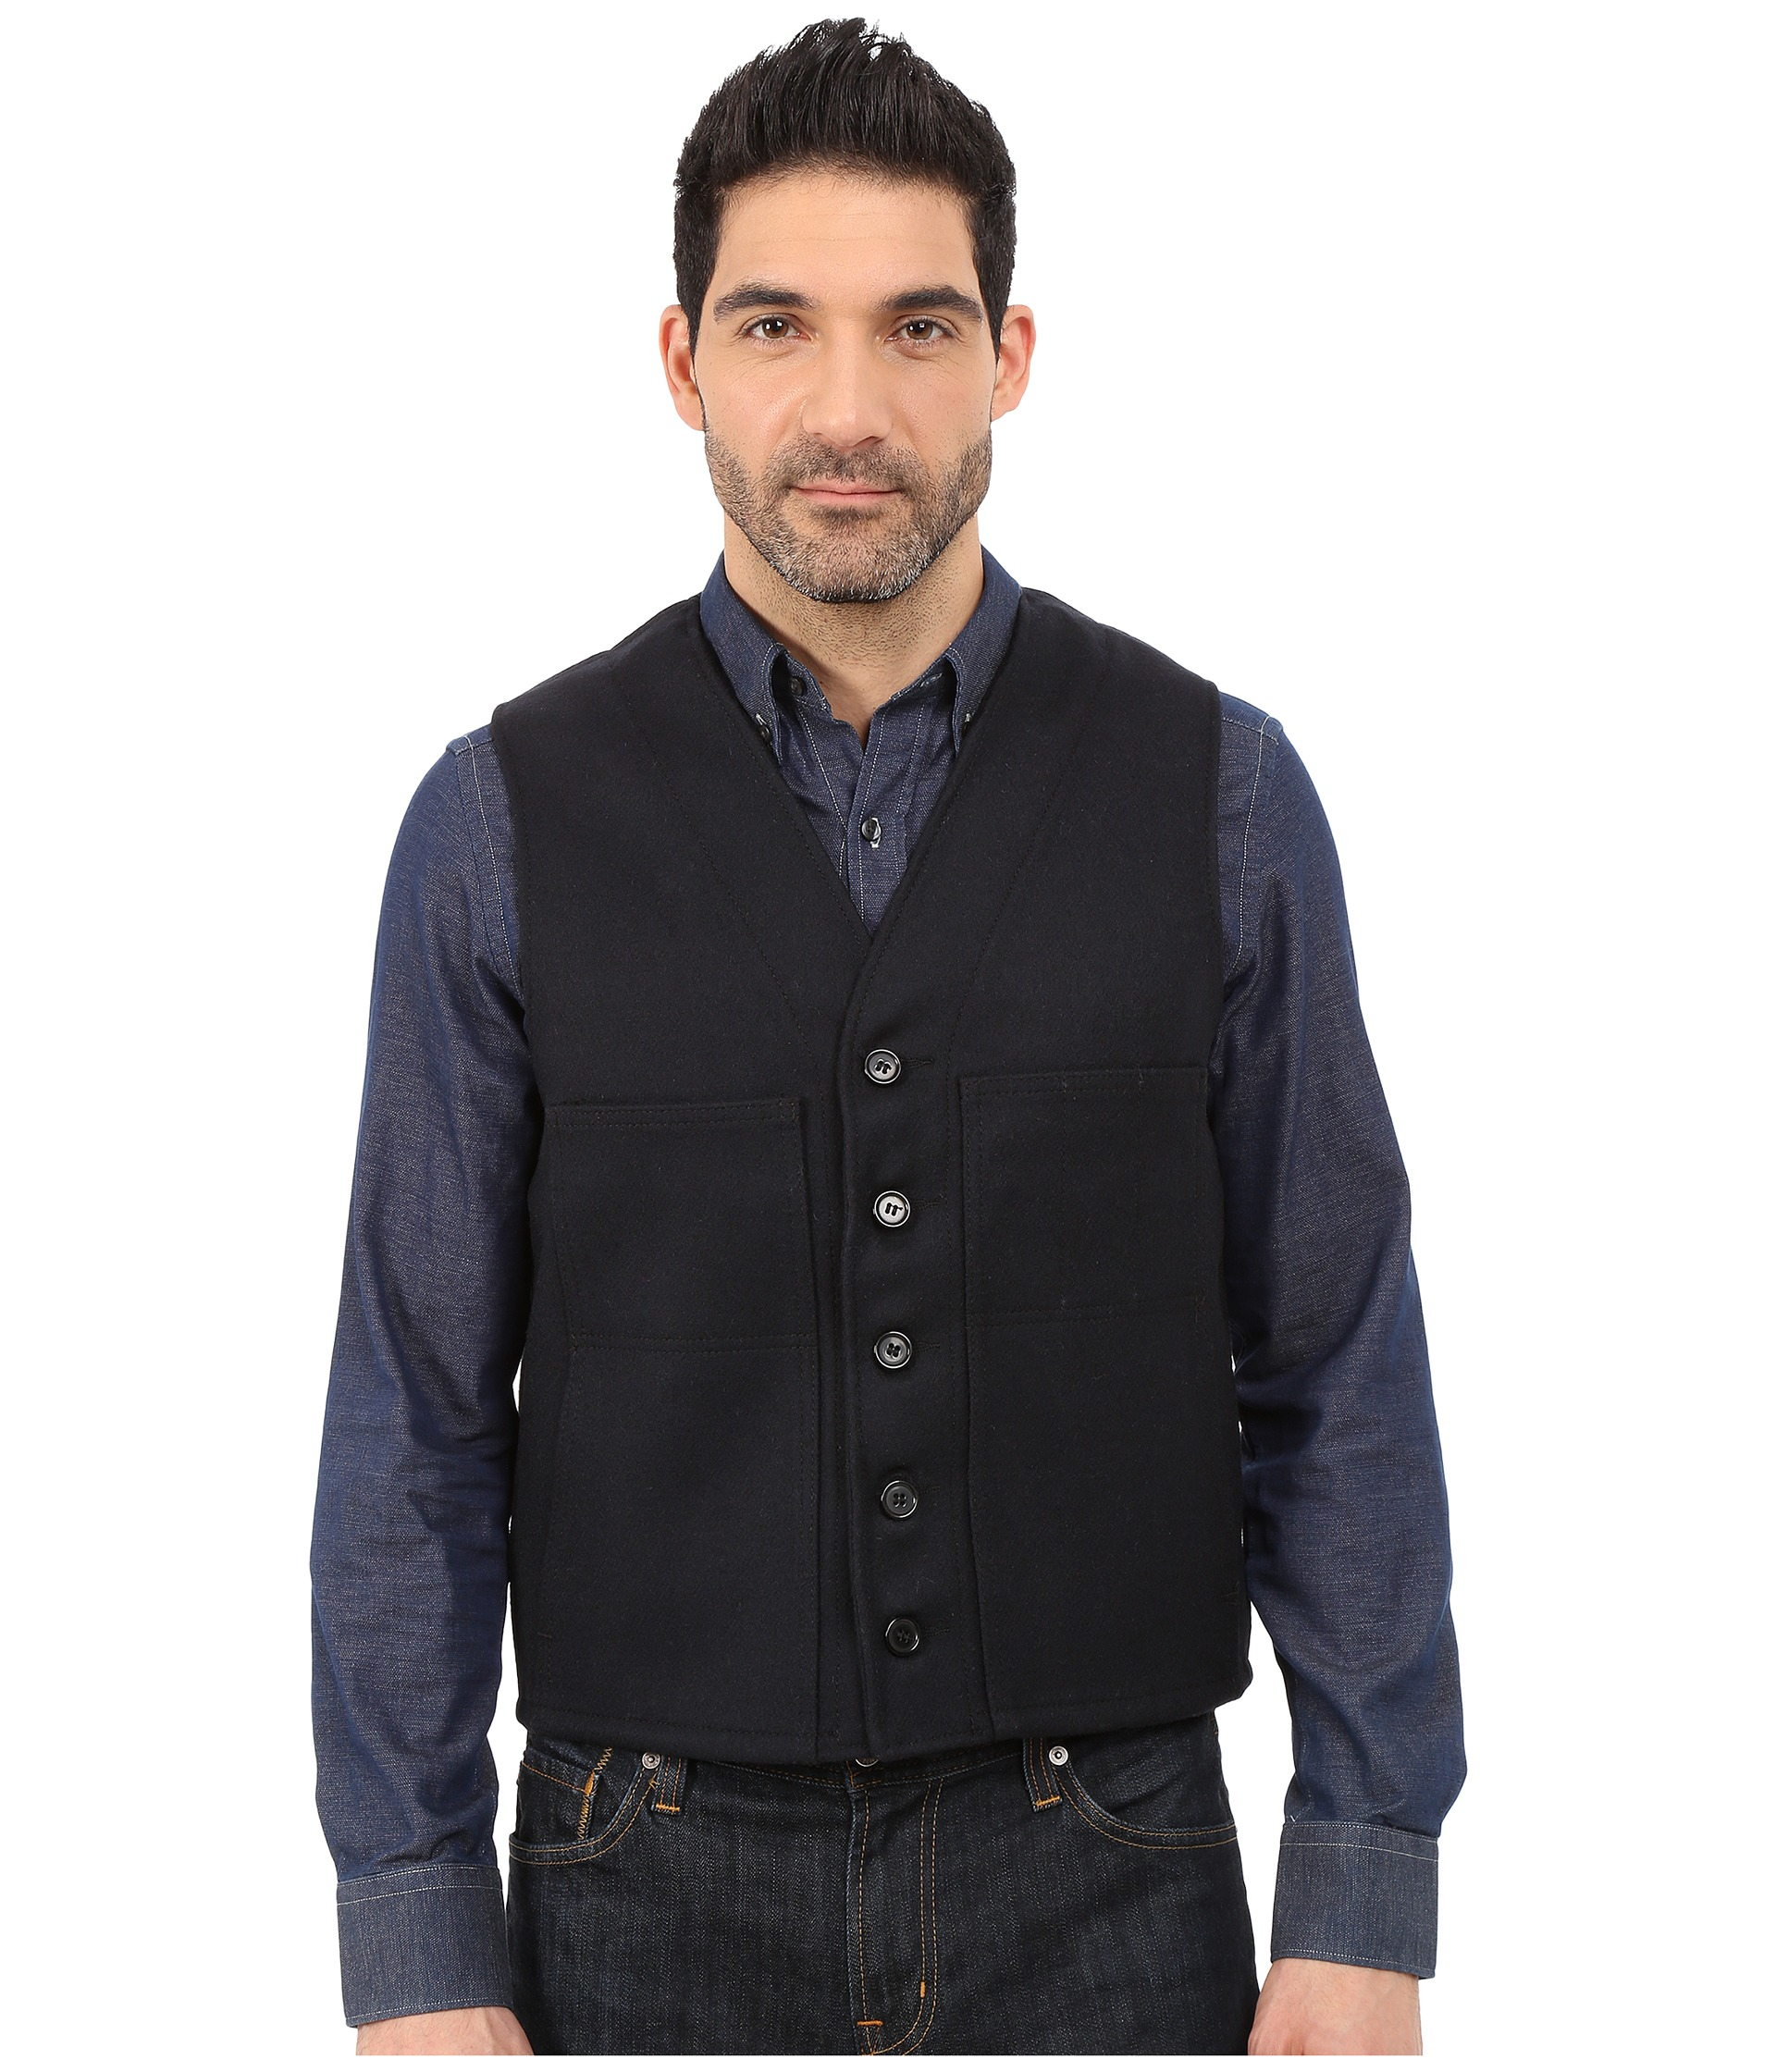 Filson wool mackinaw vest mens black 428 khoury investment group inc